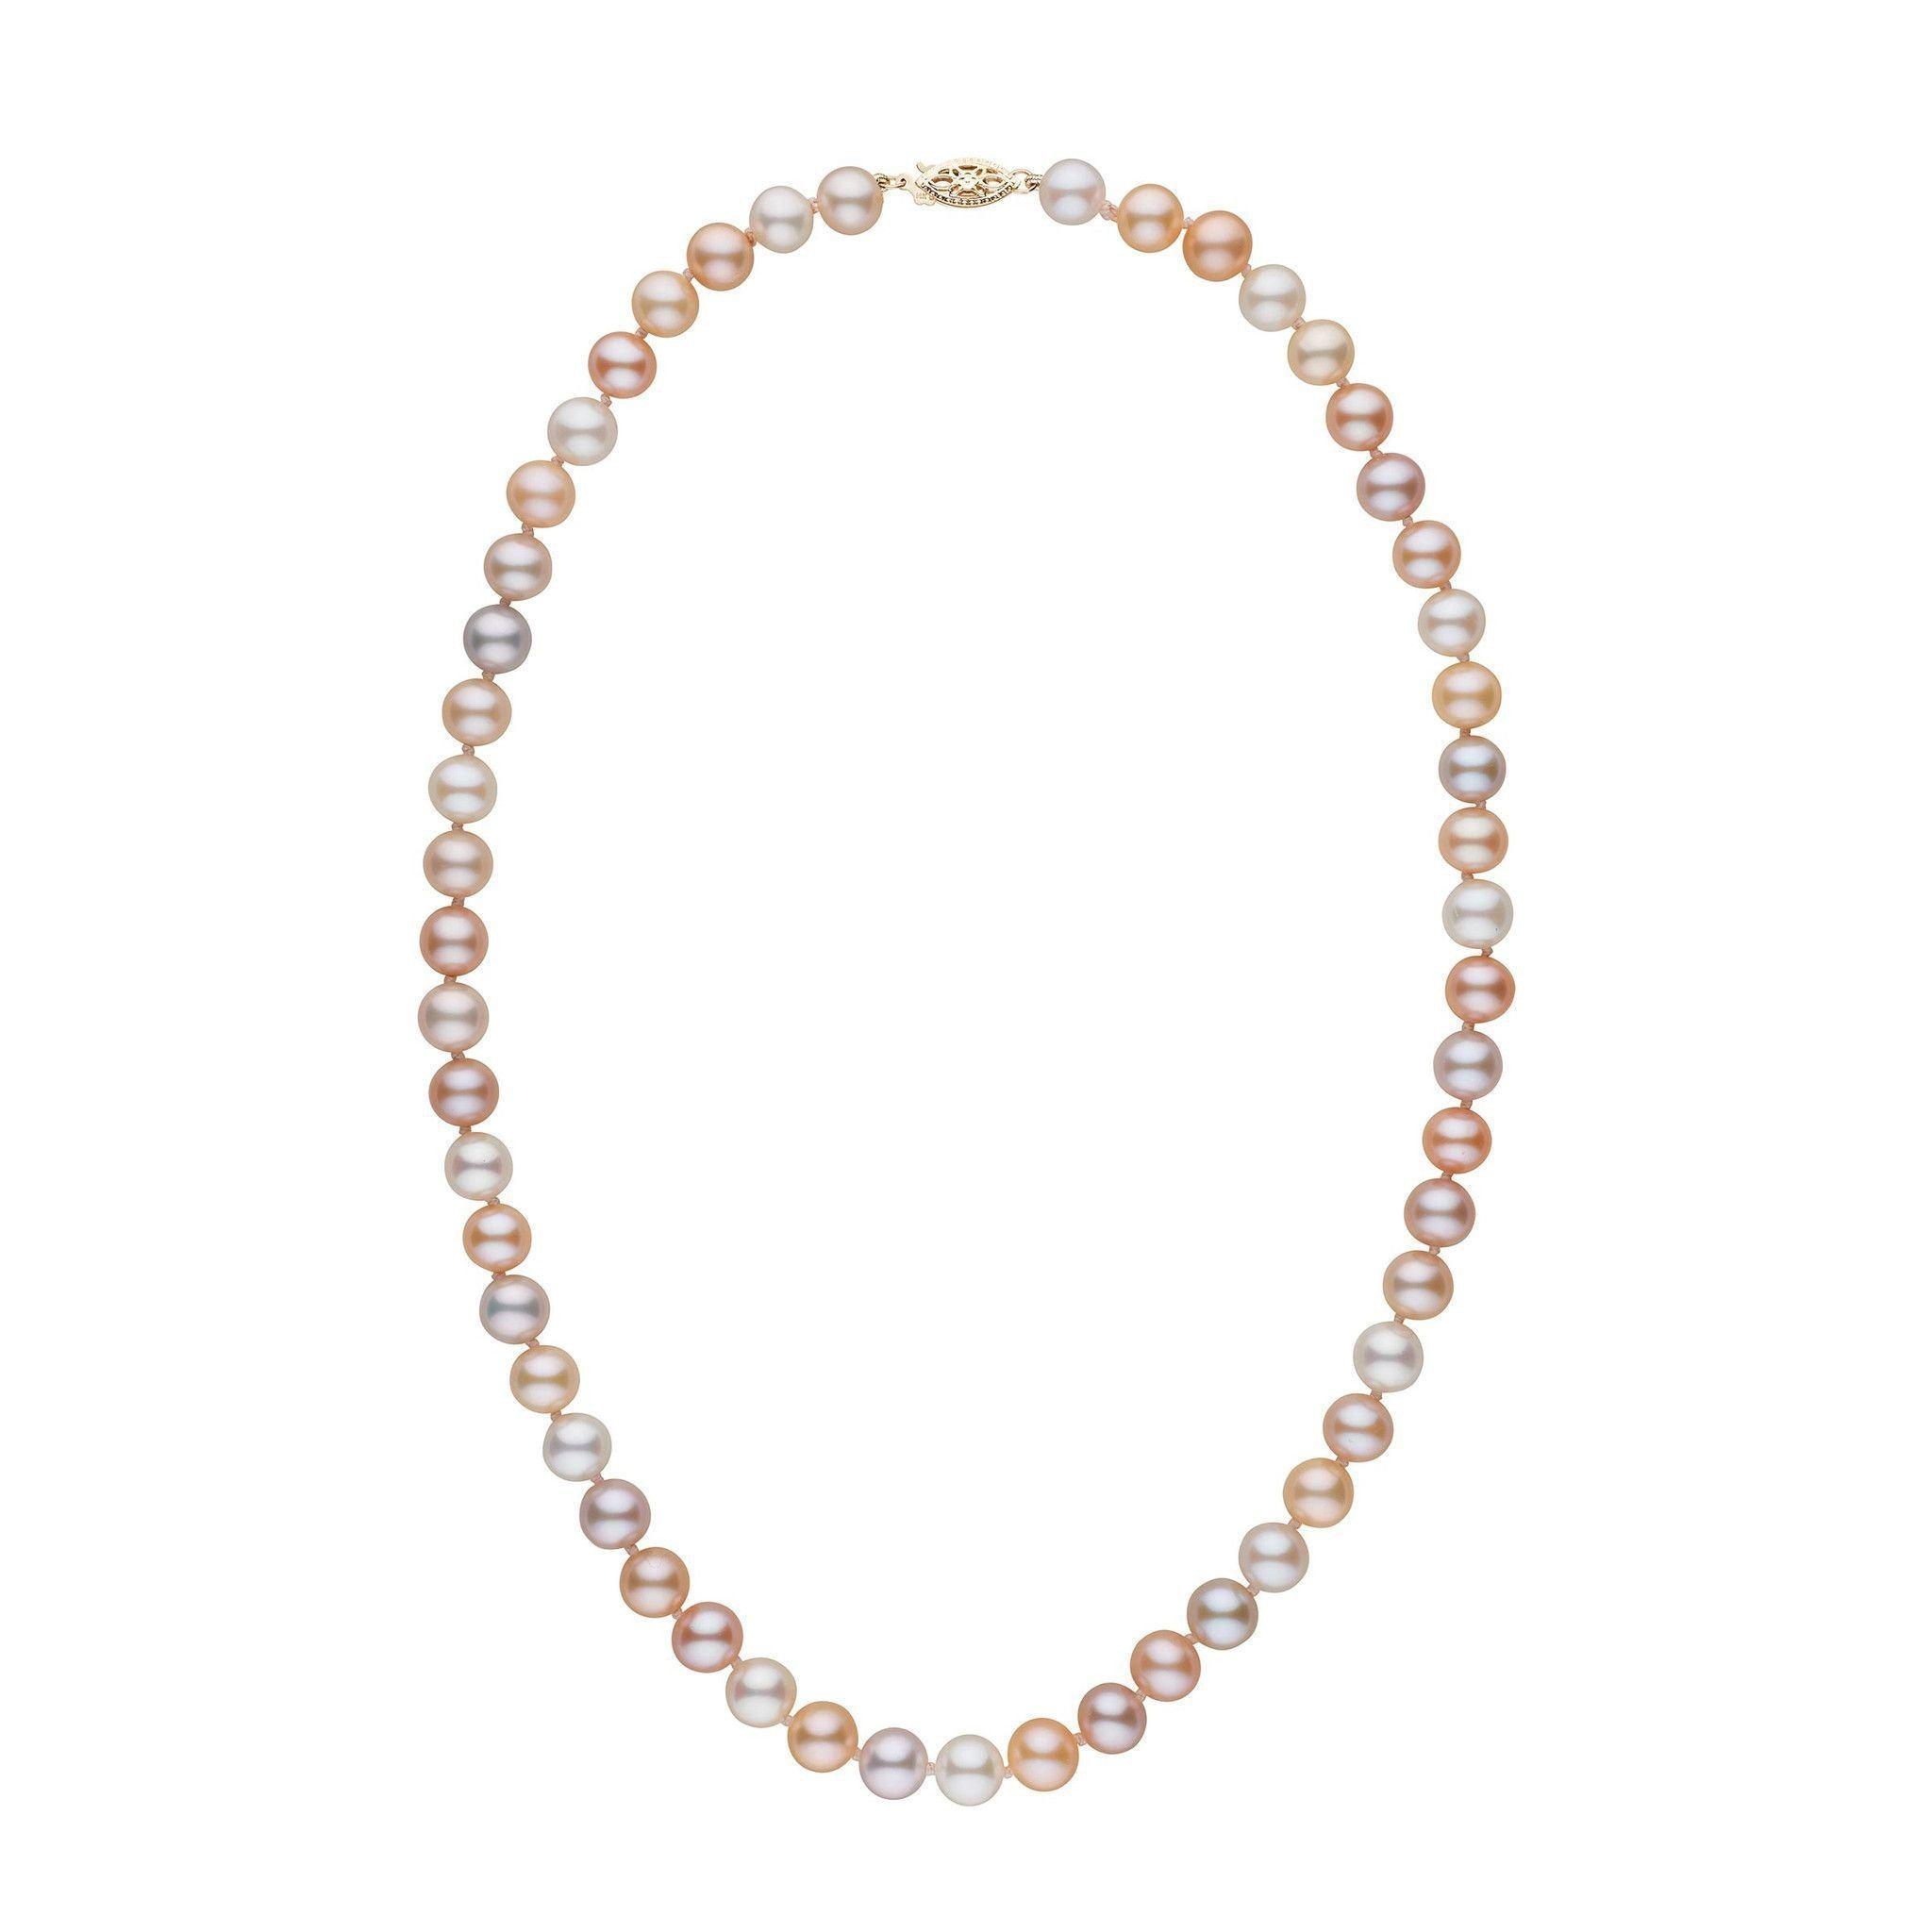 7.5-8.0 mm 18 Inch AAA Multicolor Freshwater Pearl Necklace